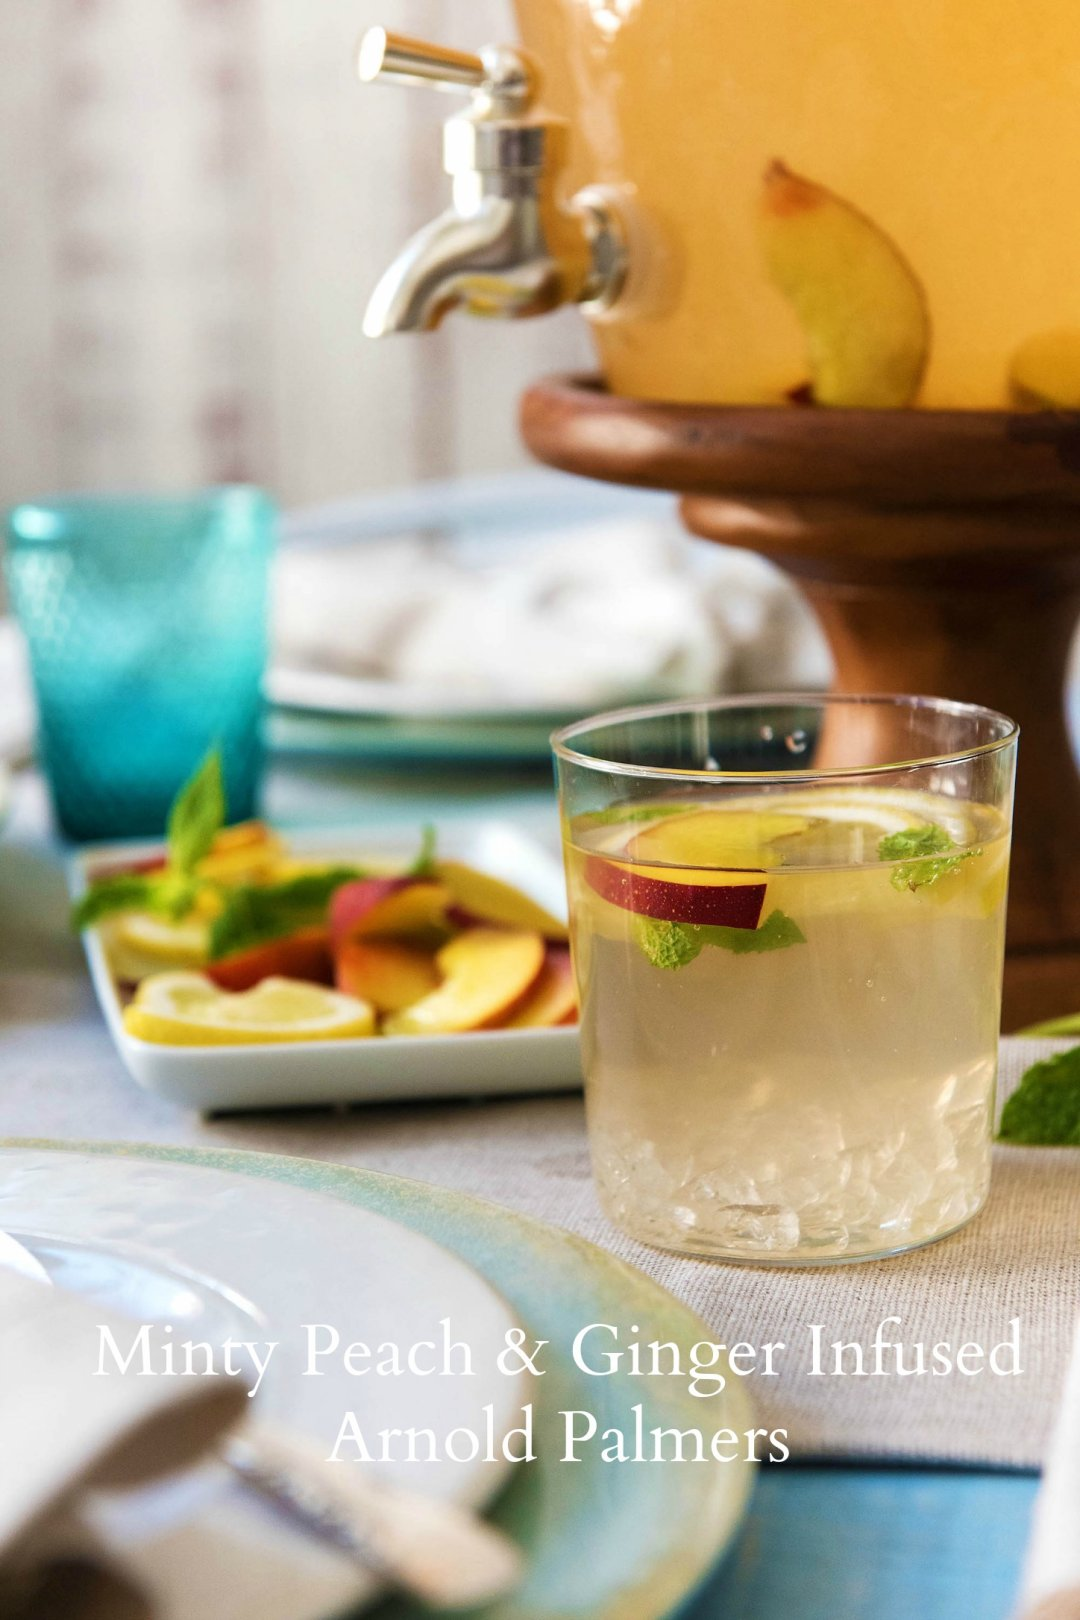 Recipe Minty Peach Amp Ginger Infused Arnold Palmers From